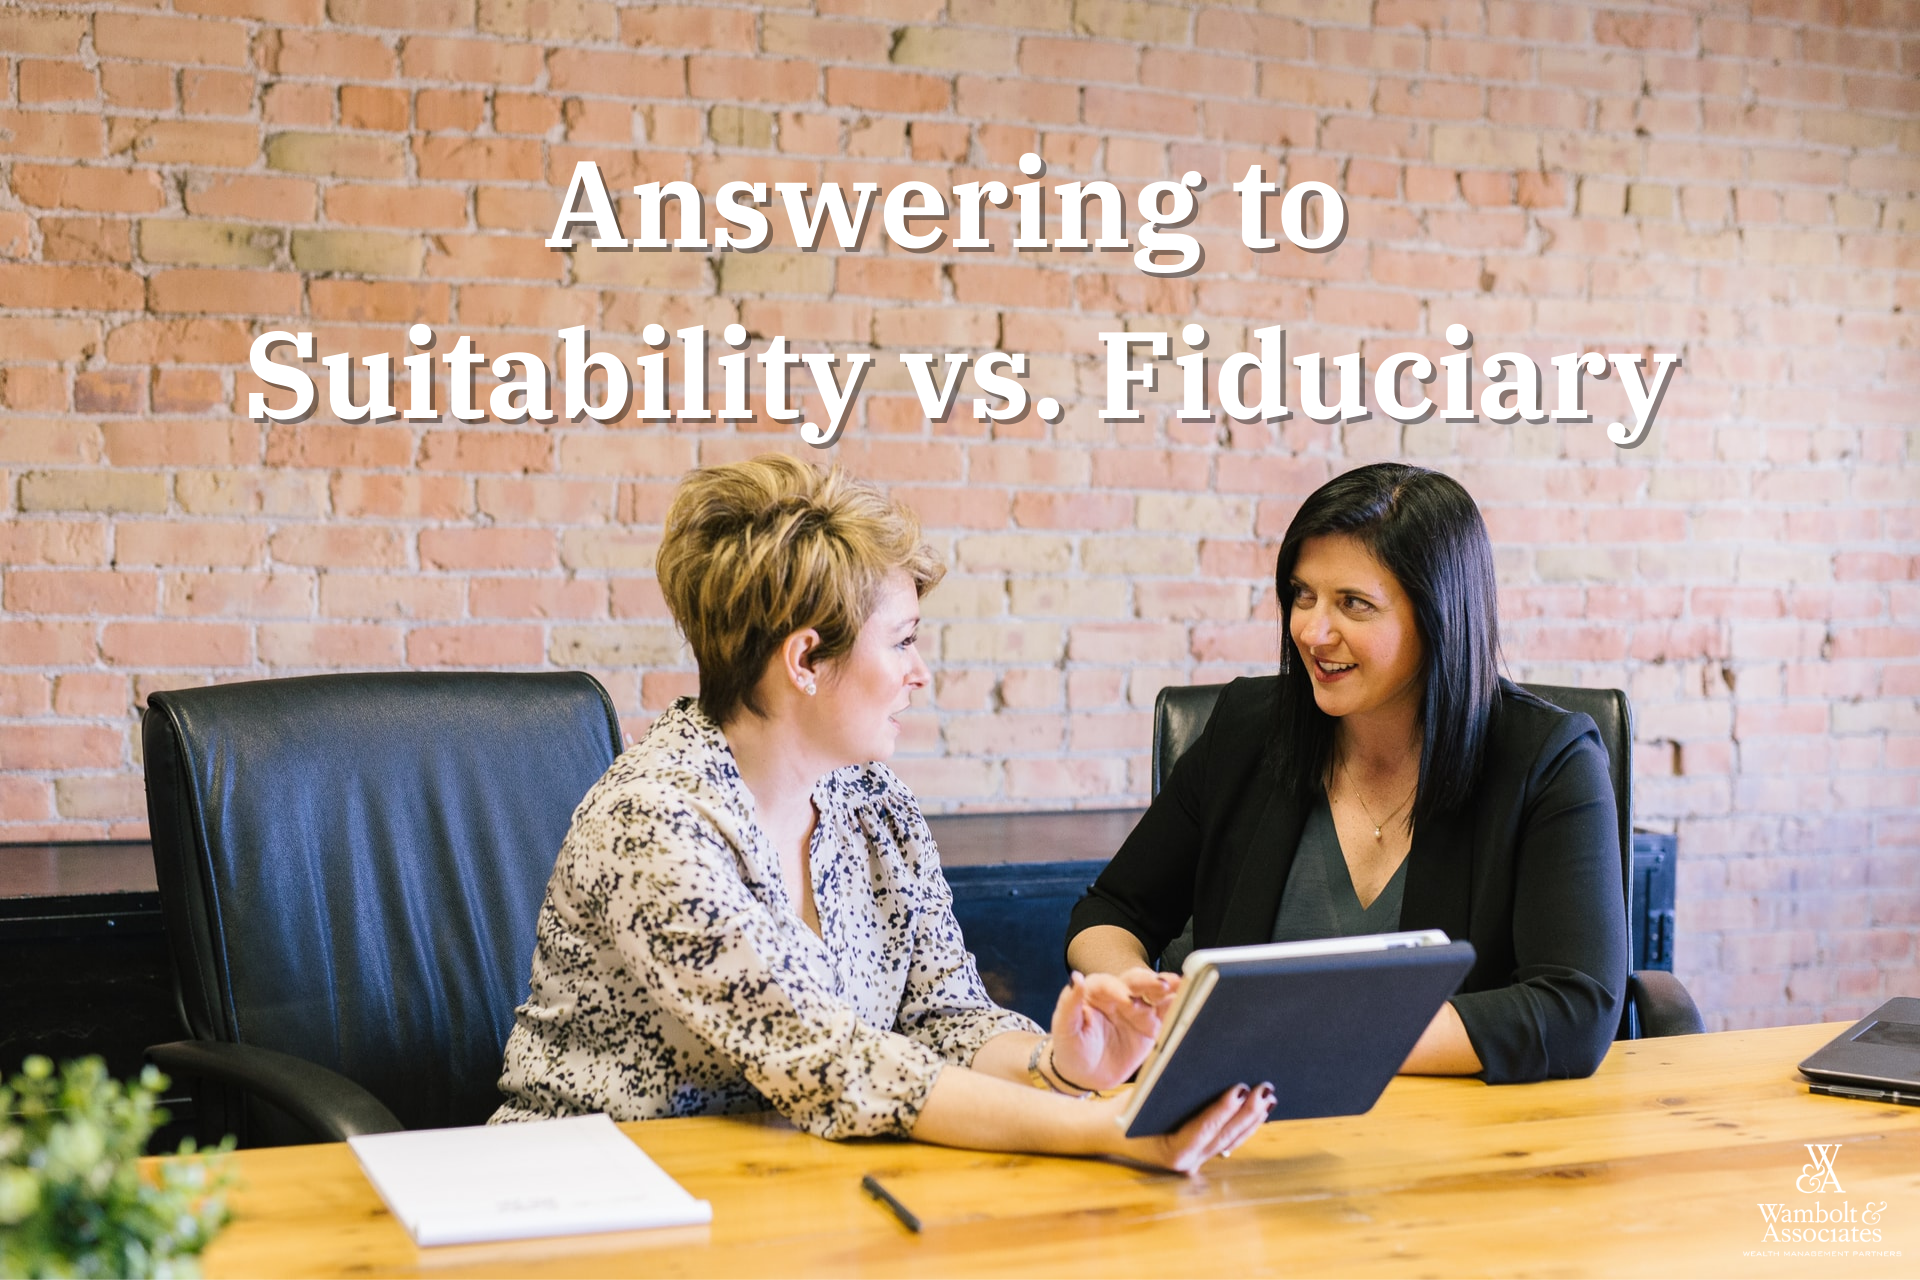 Answering to Suitability vs. Fiduciary